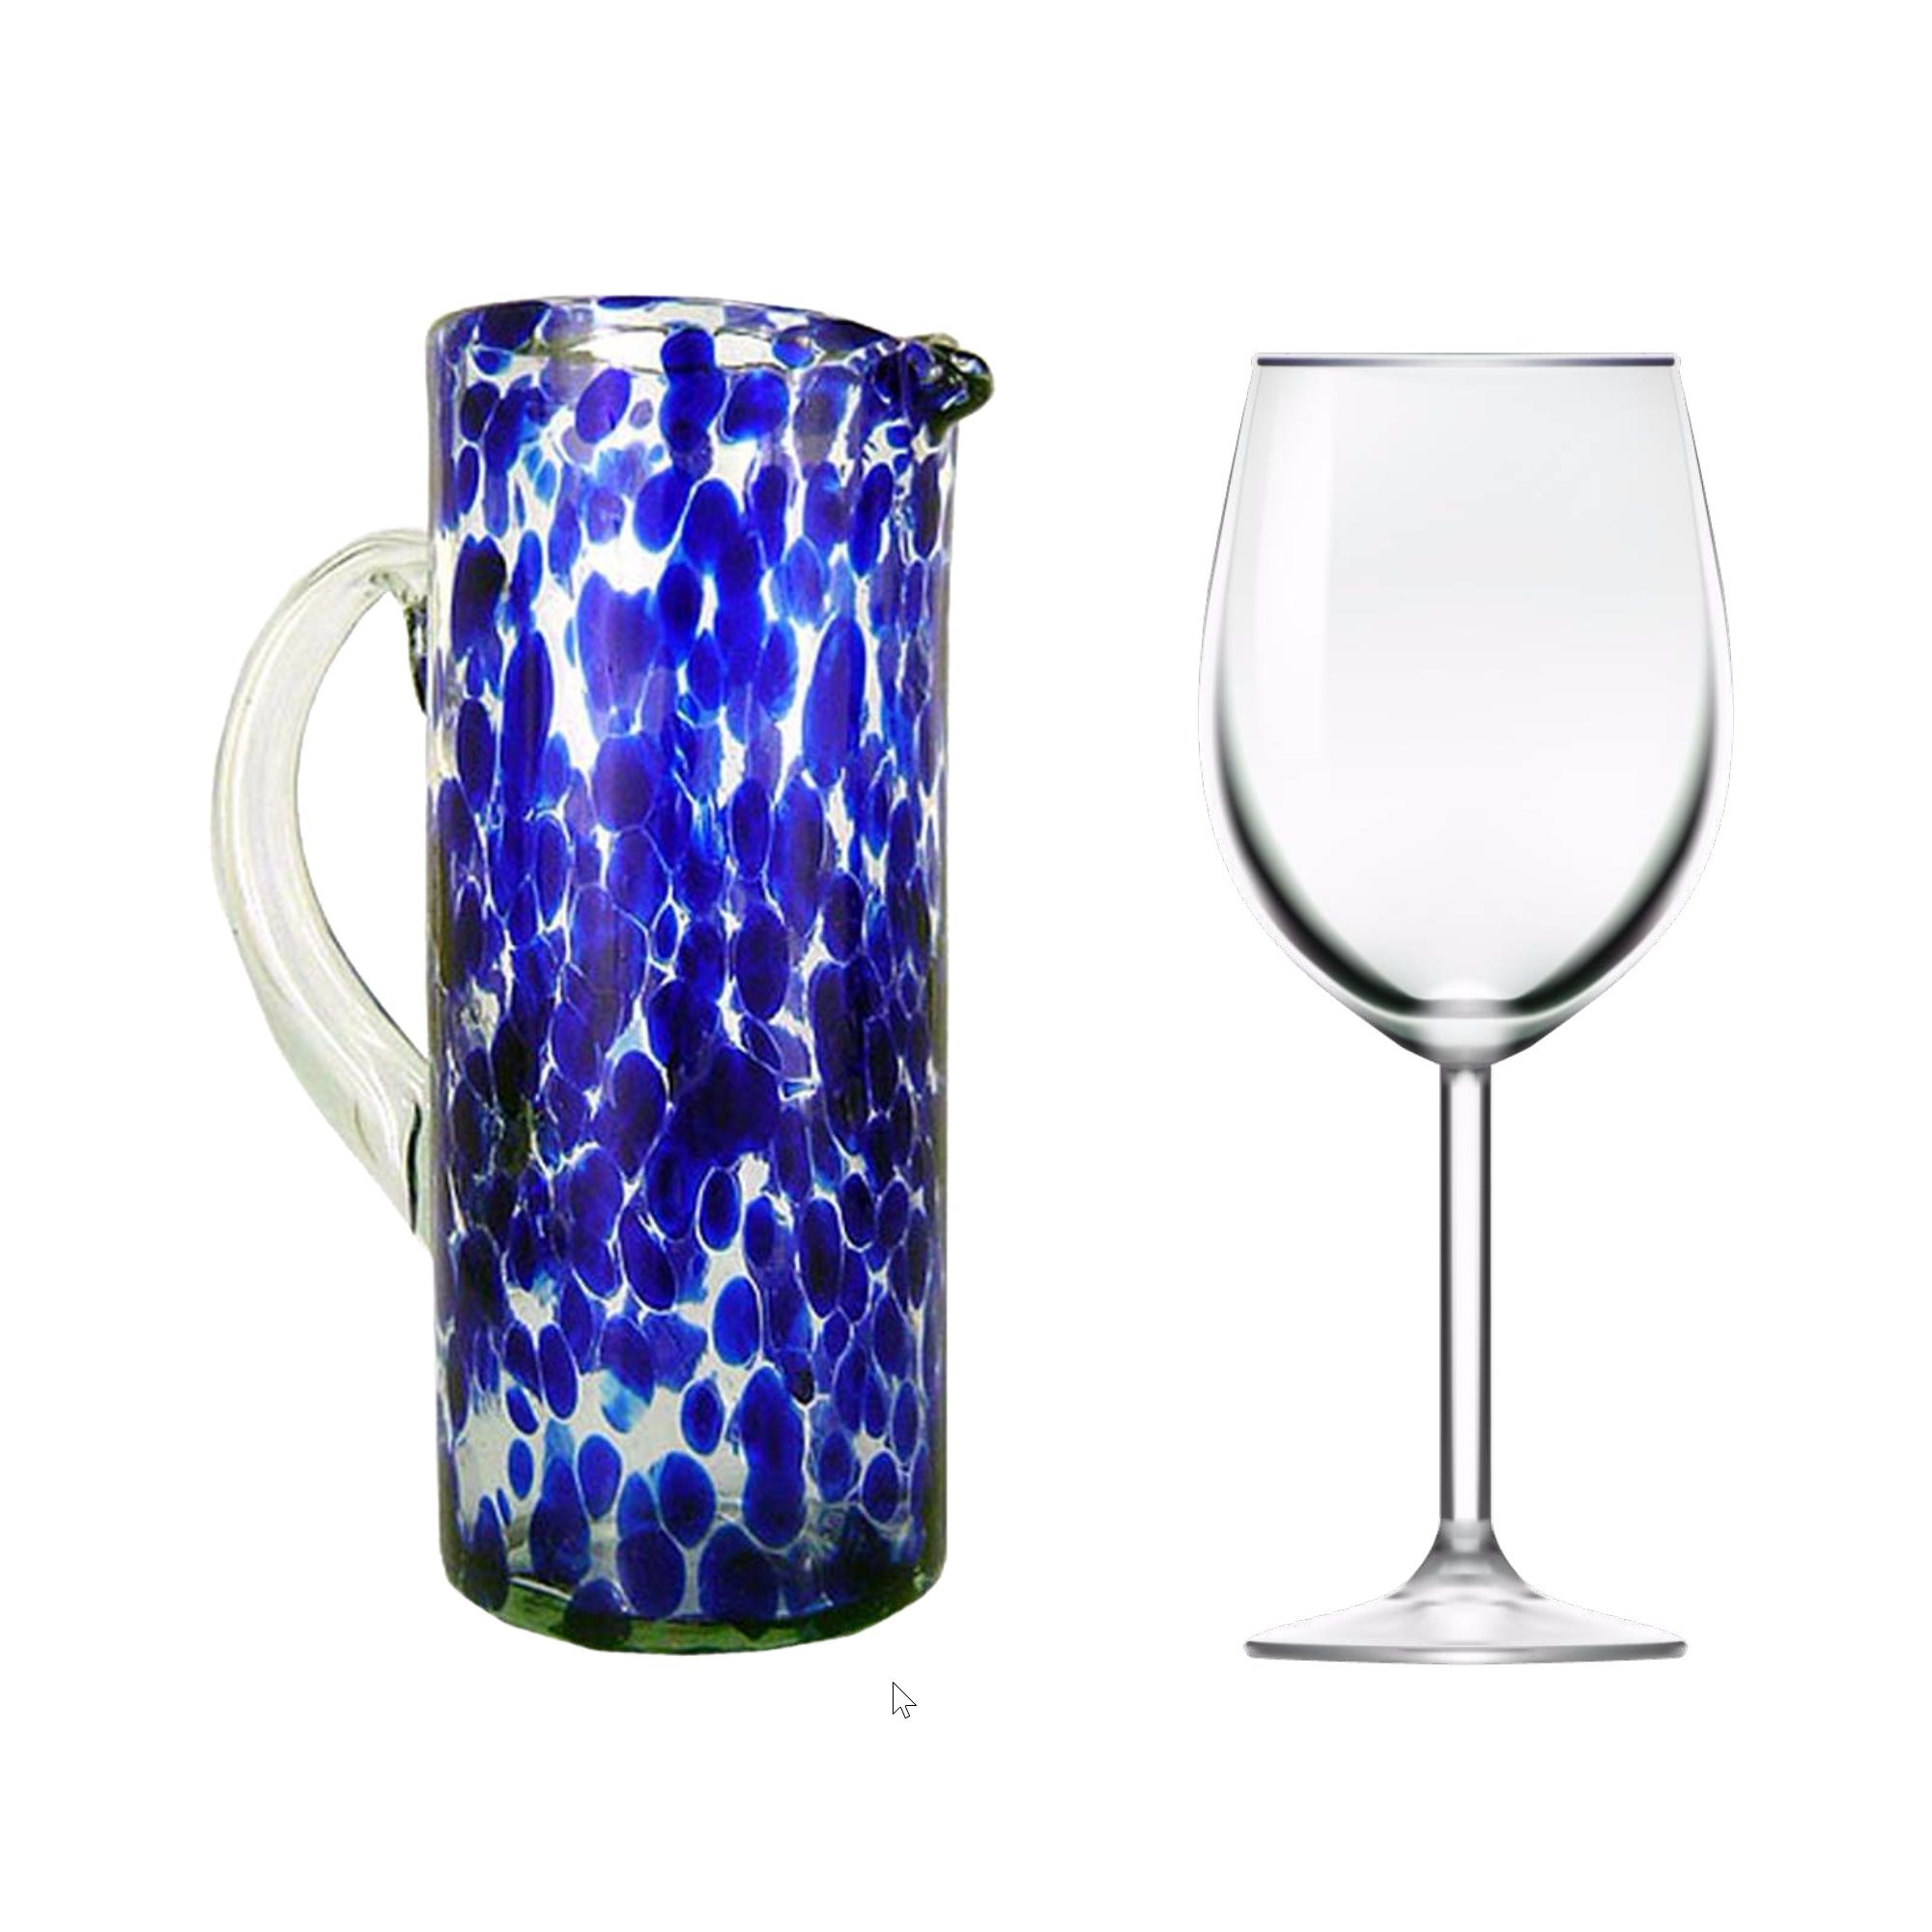 NOVICA Hand Blown Blue and Clear Decorative Recycled Glass Pitcher, 33 oz 'Dotted Blue' by NOVICA (Image #2)